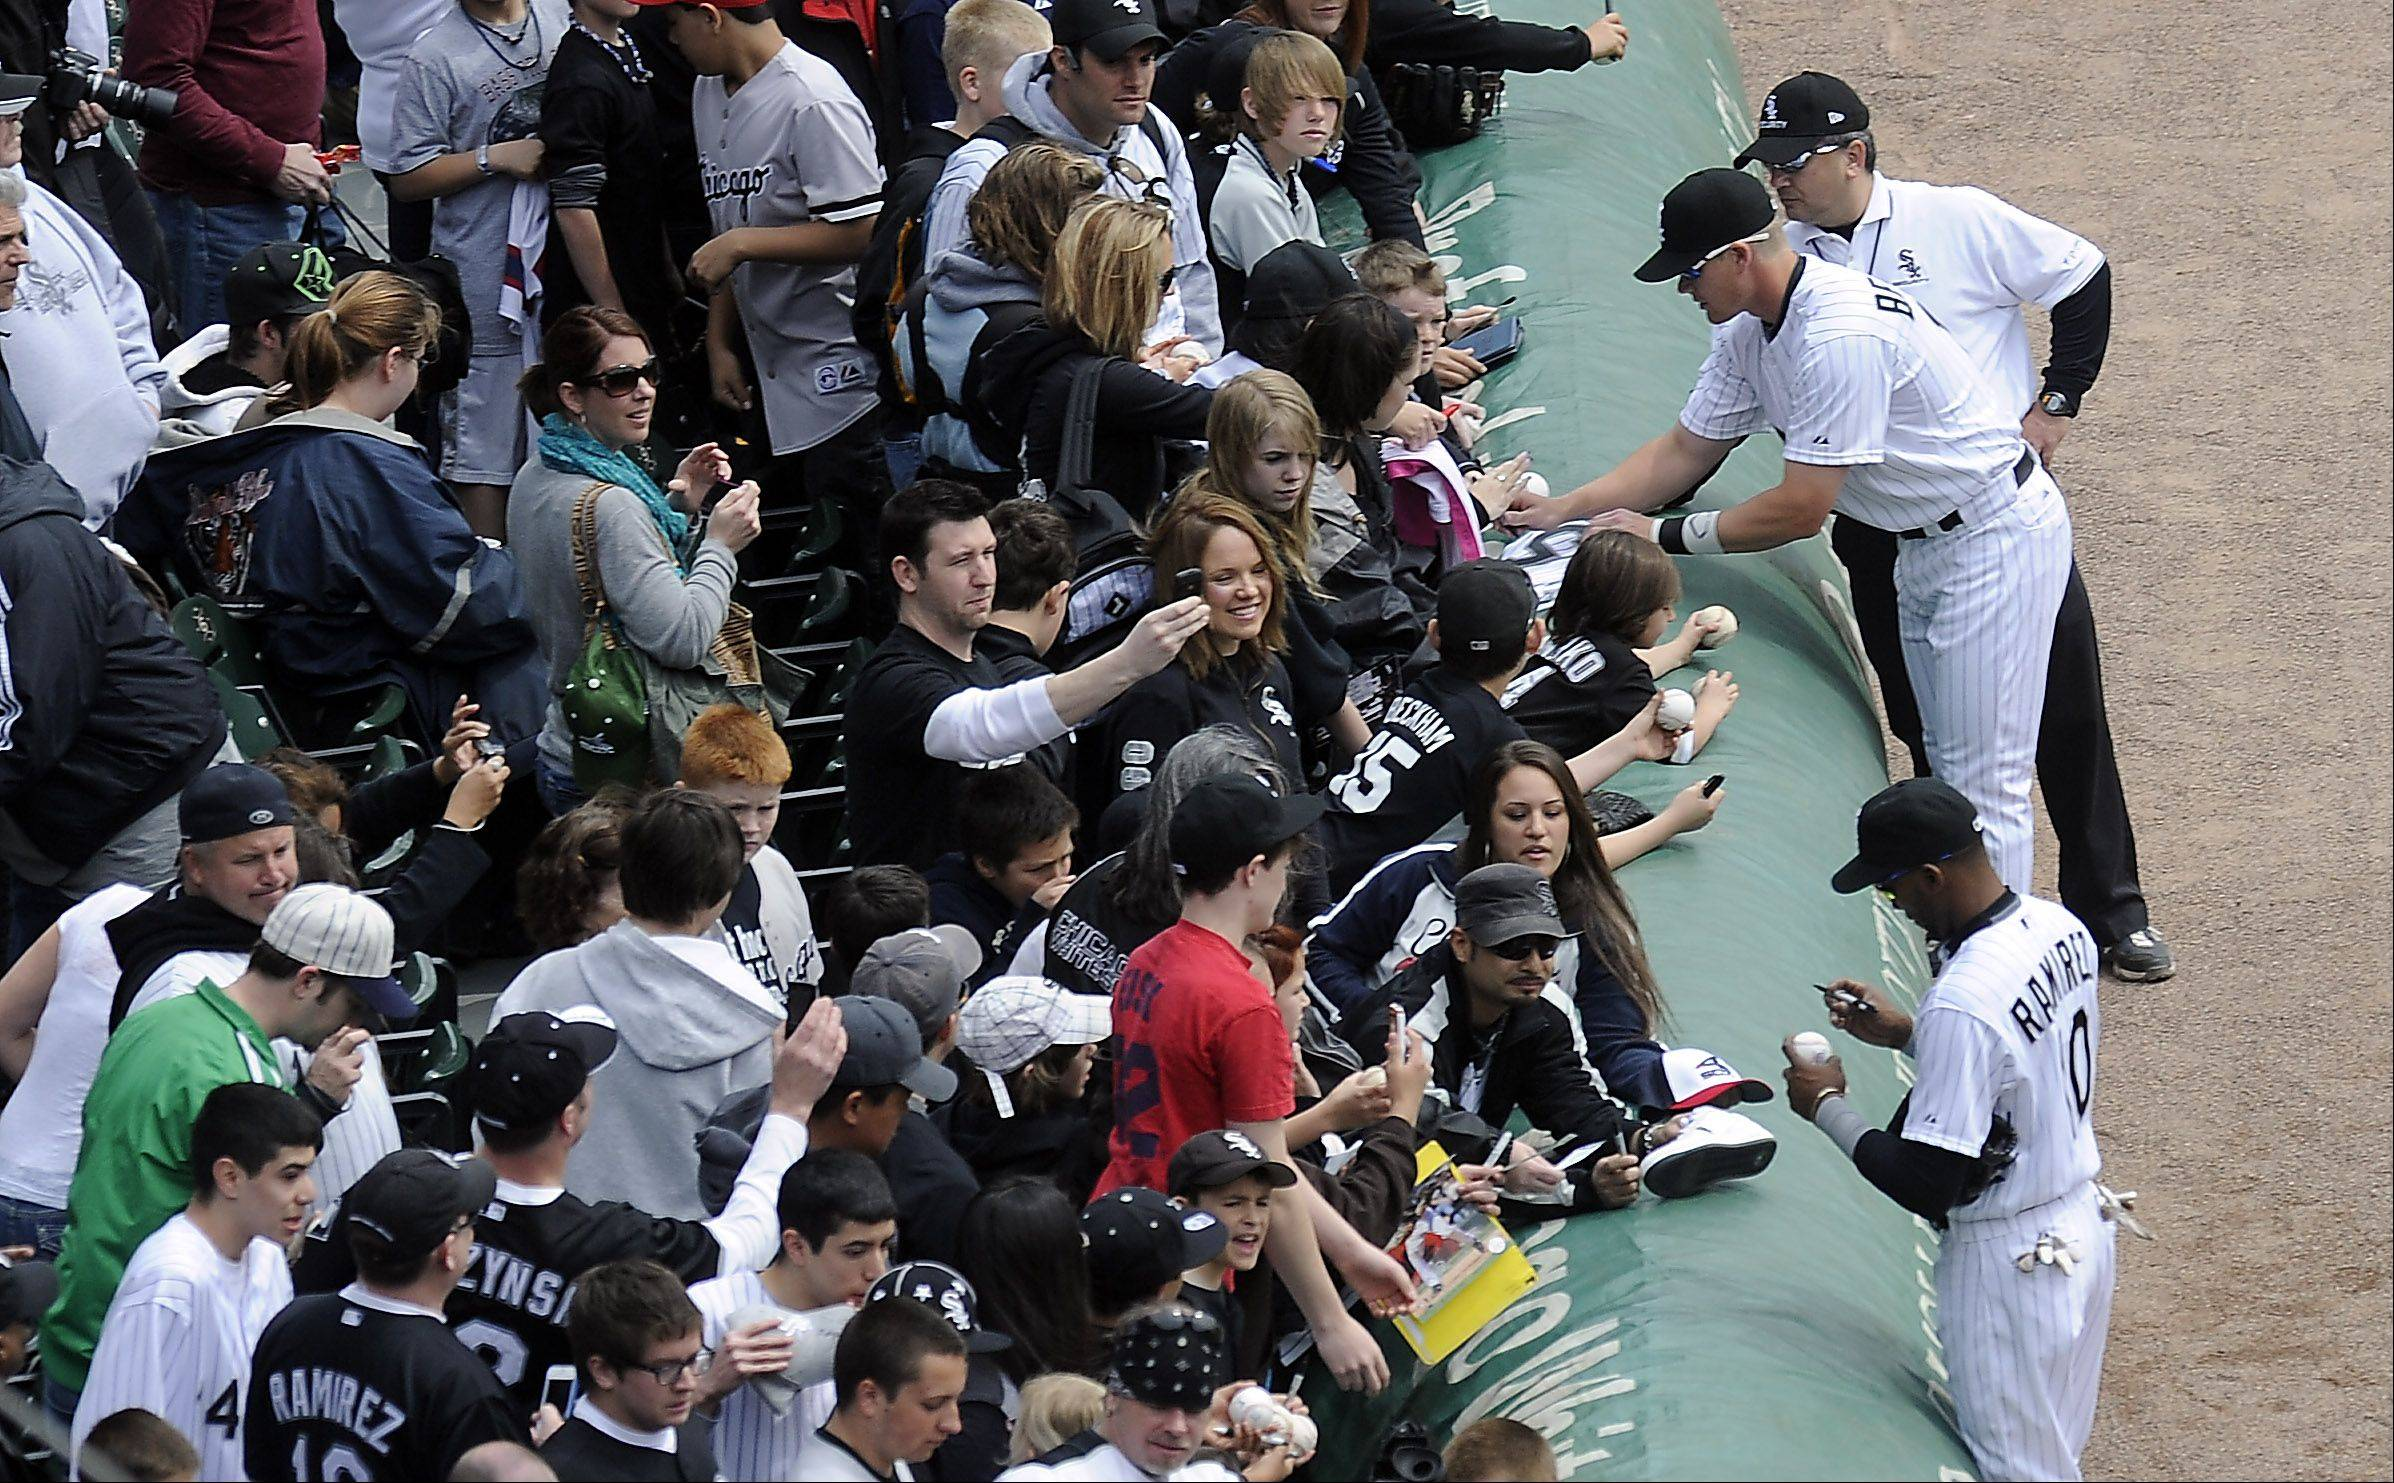 White Sox players sign autographs for the fans before the game.